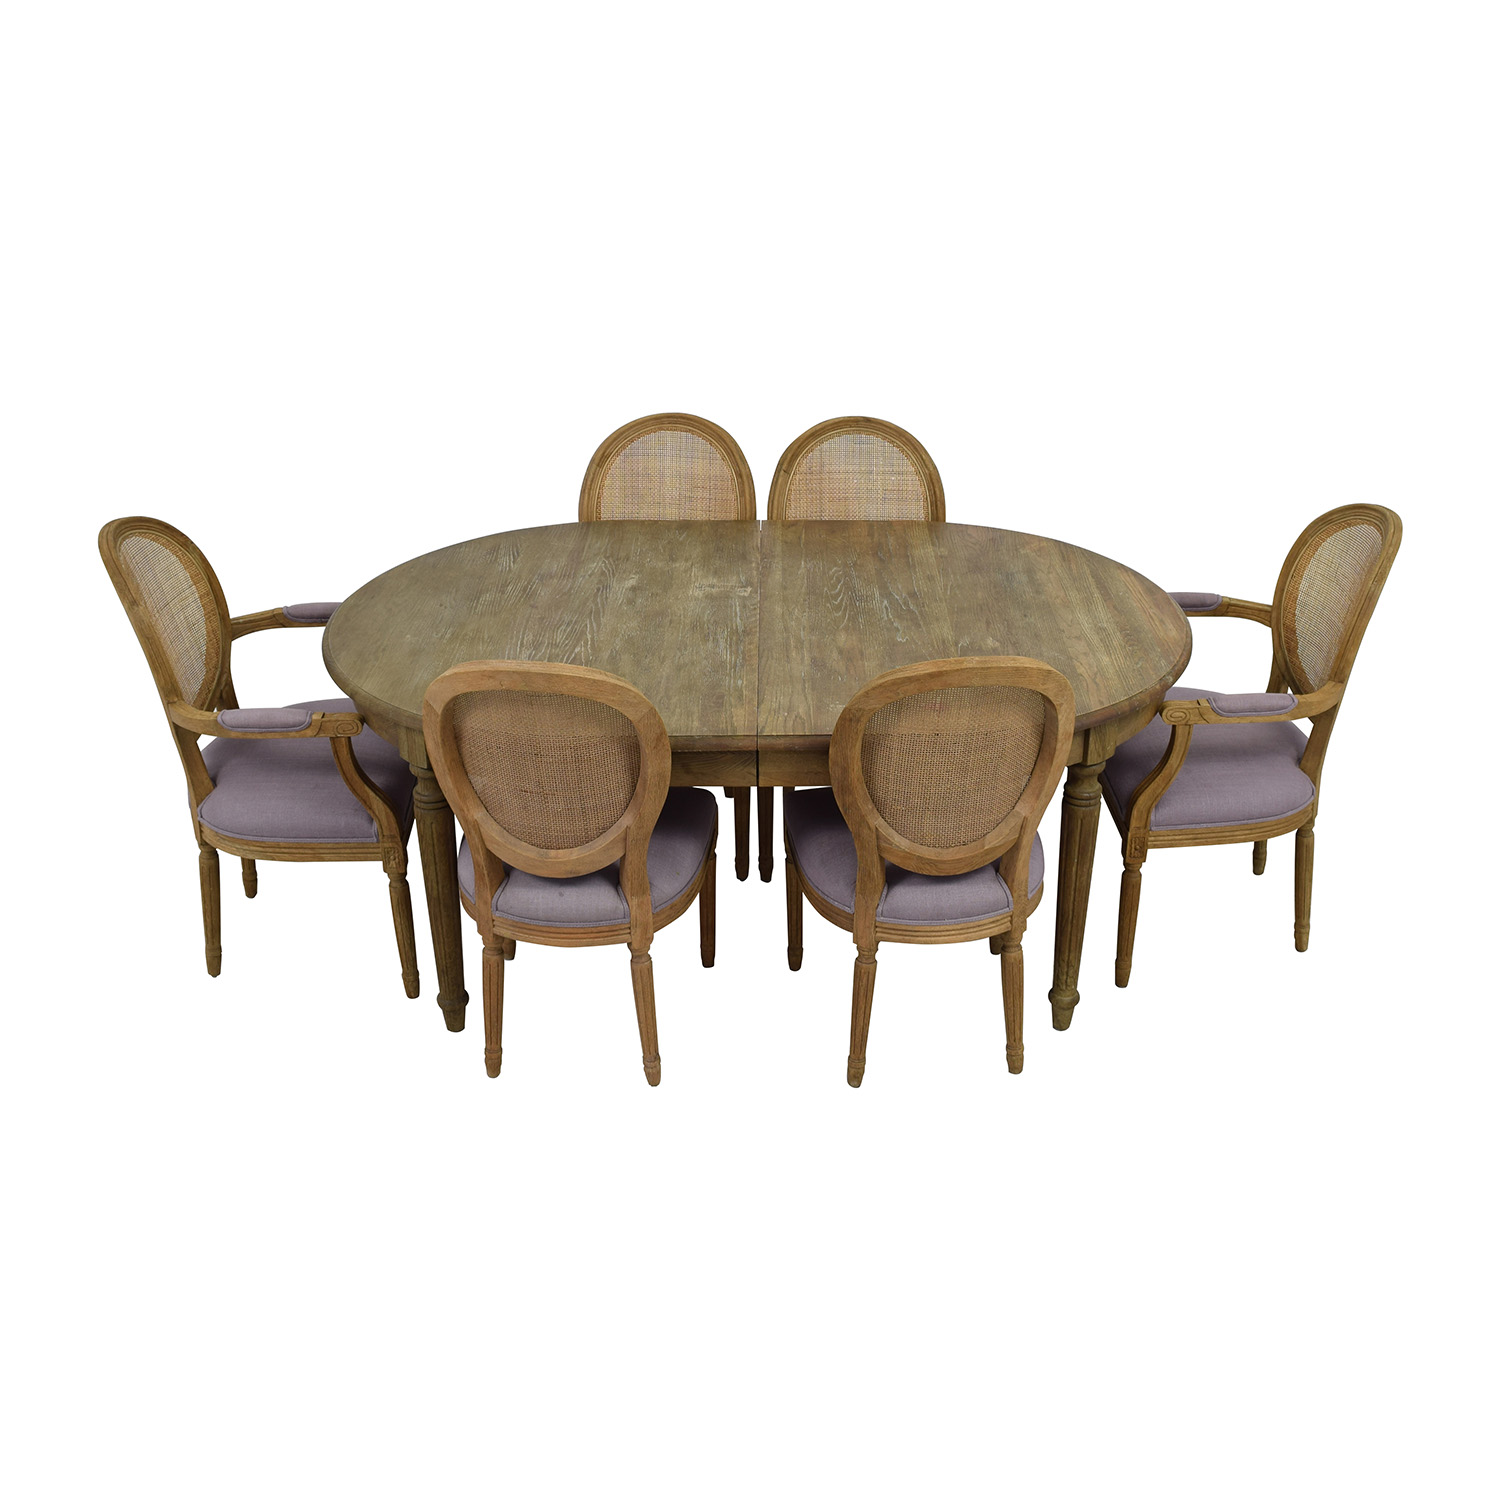 Restoration Hardware Restoration Hardware Rustic Extended Table with Six Chairs nyc